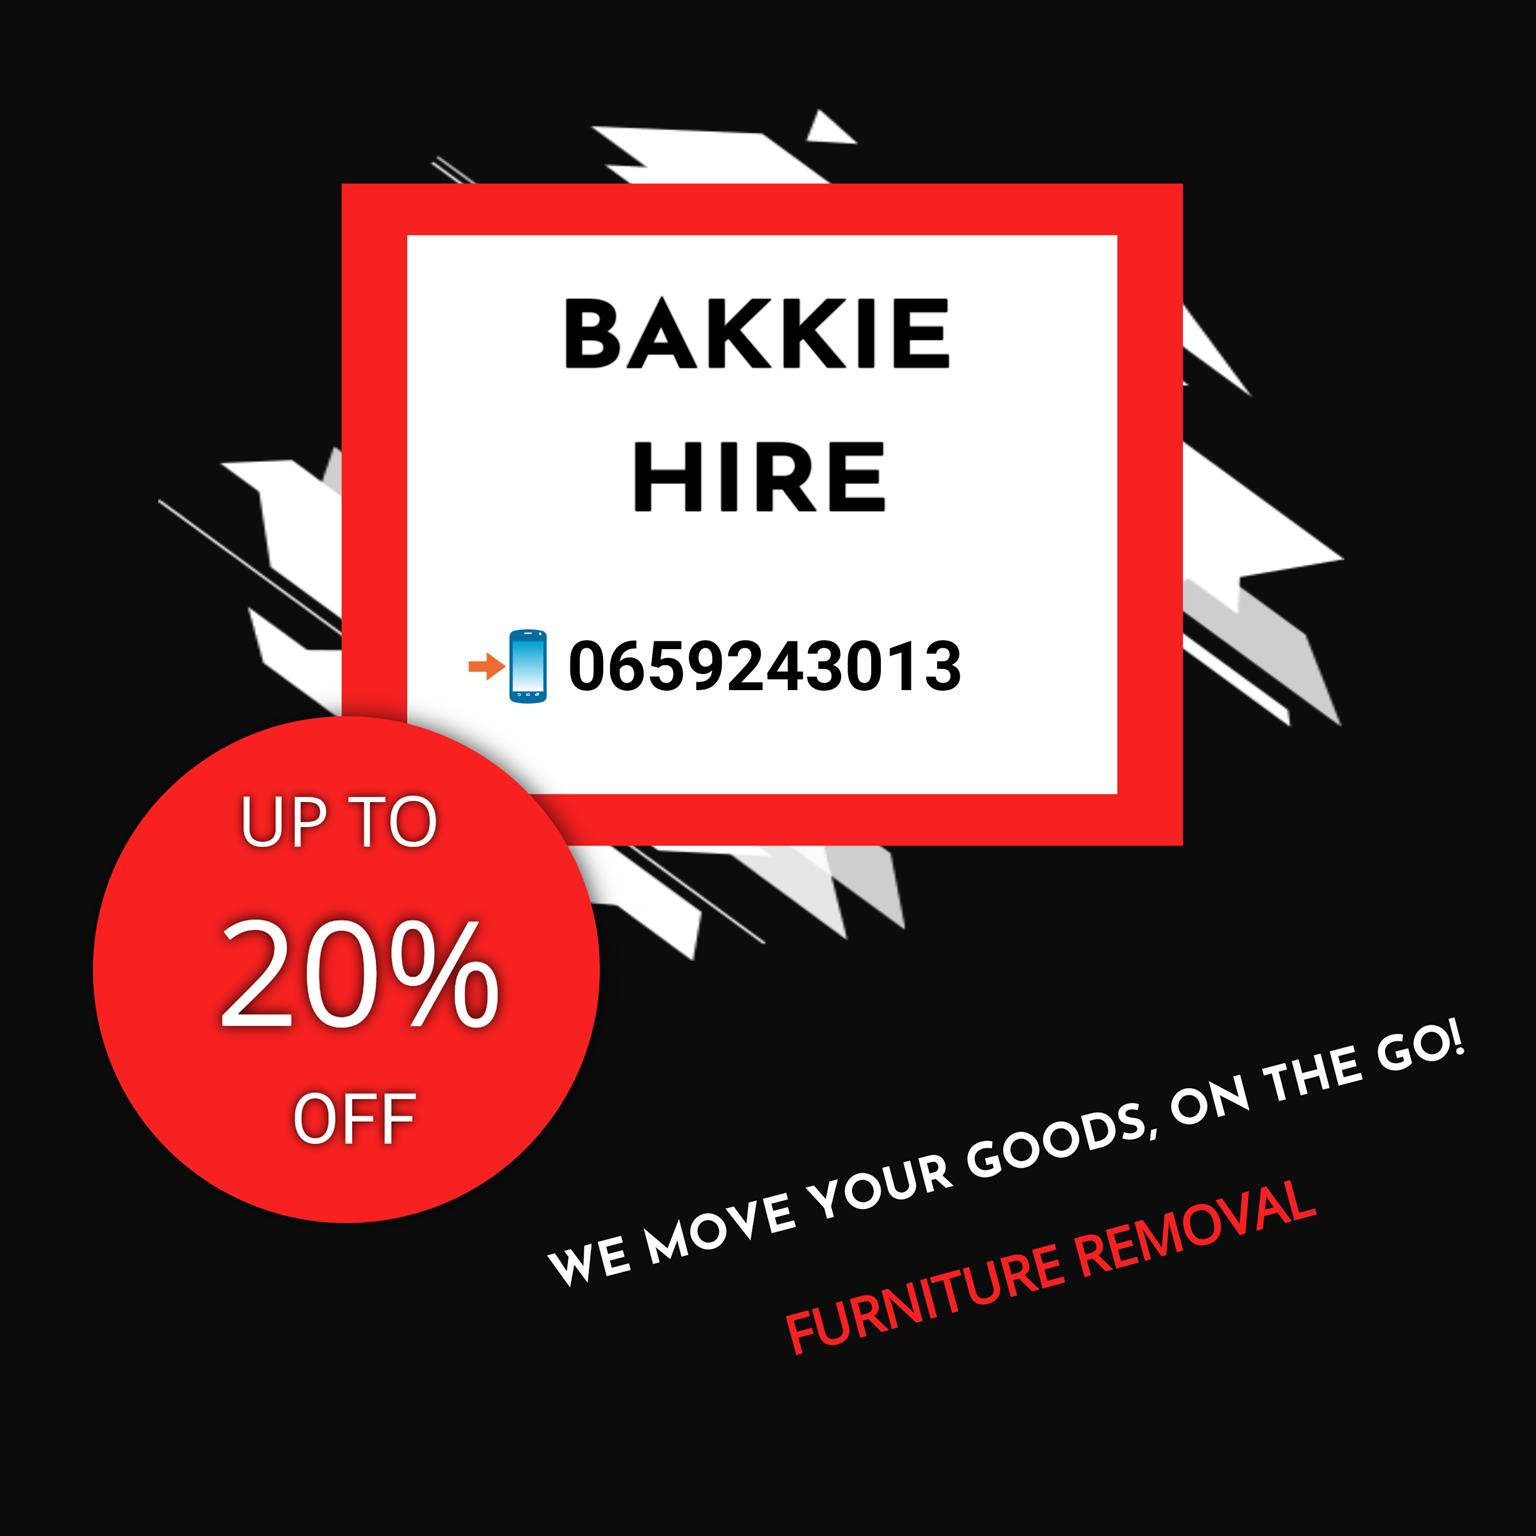 Furniture Removal Bakkie Hire